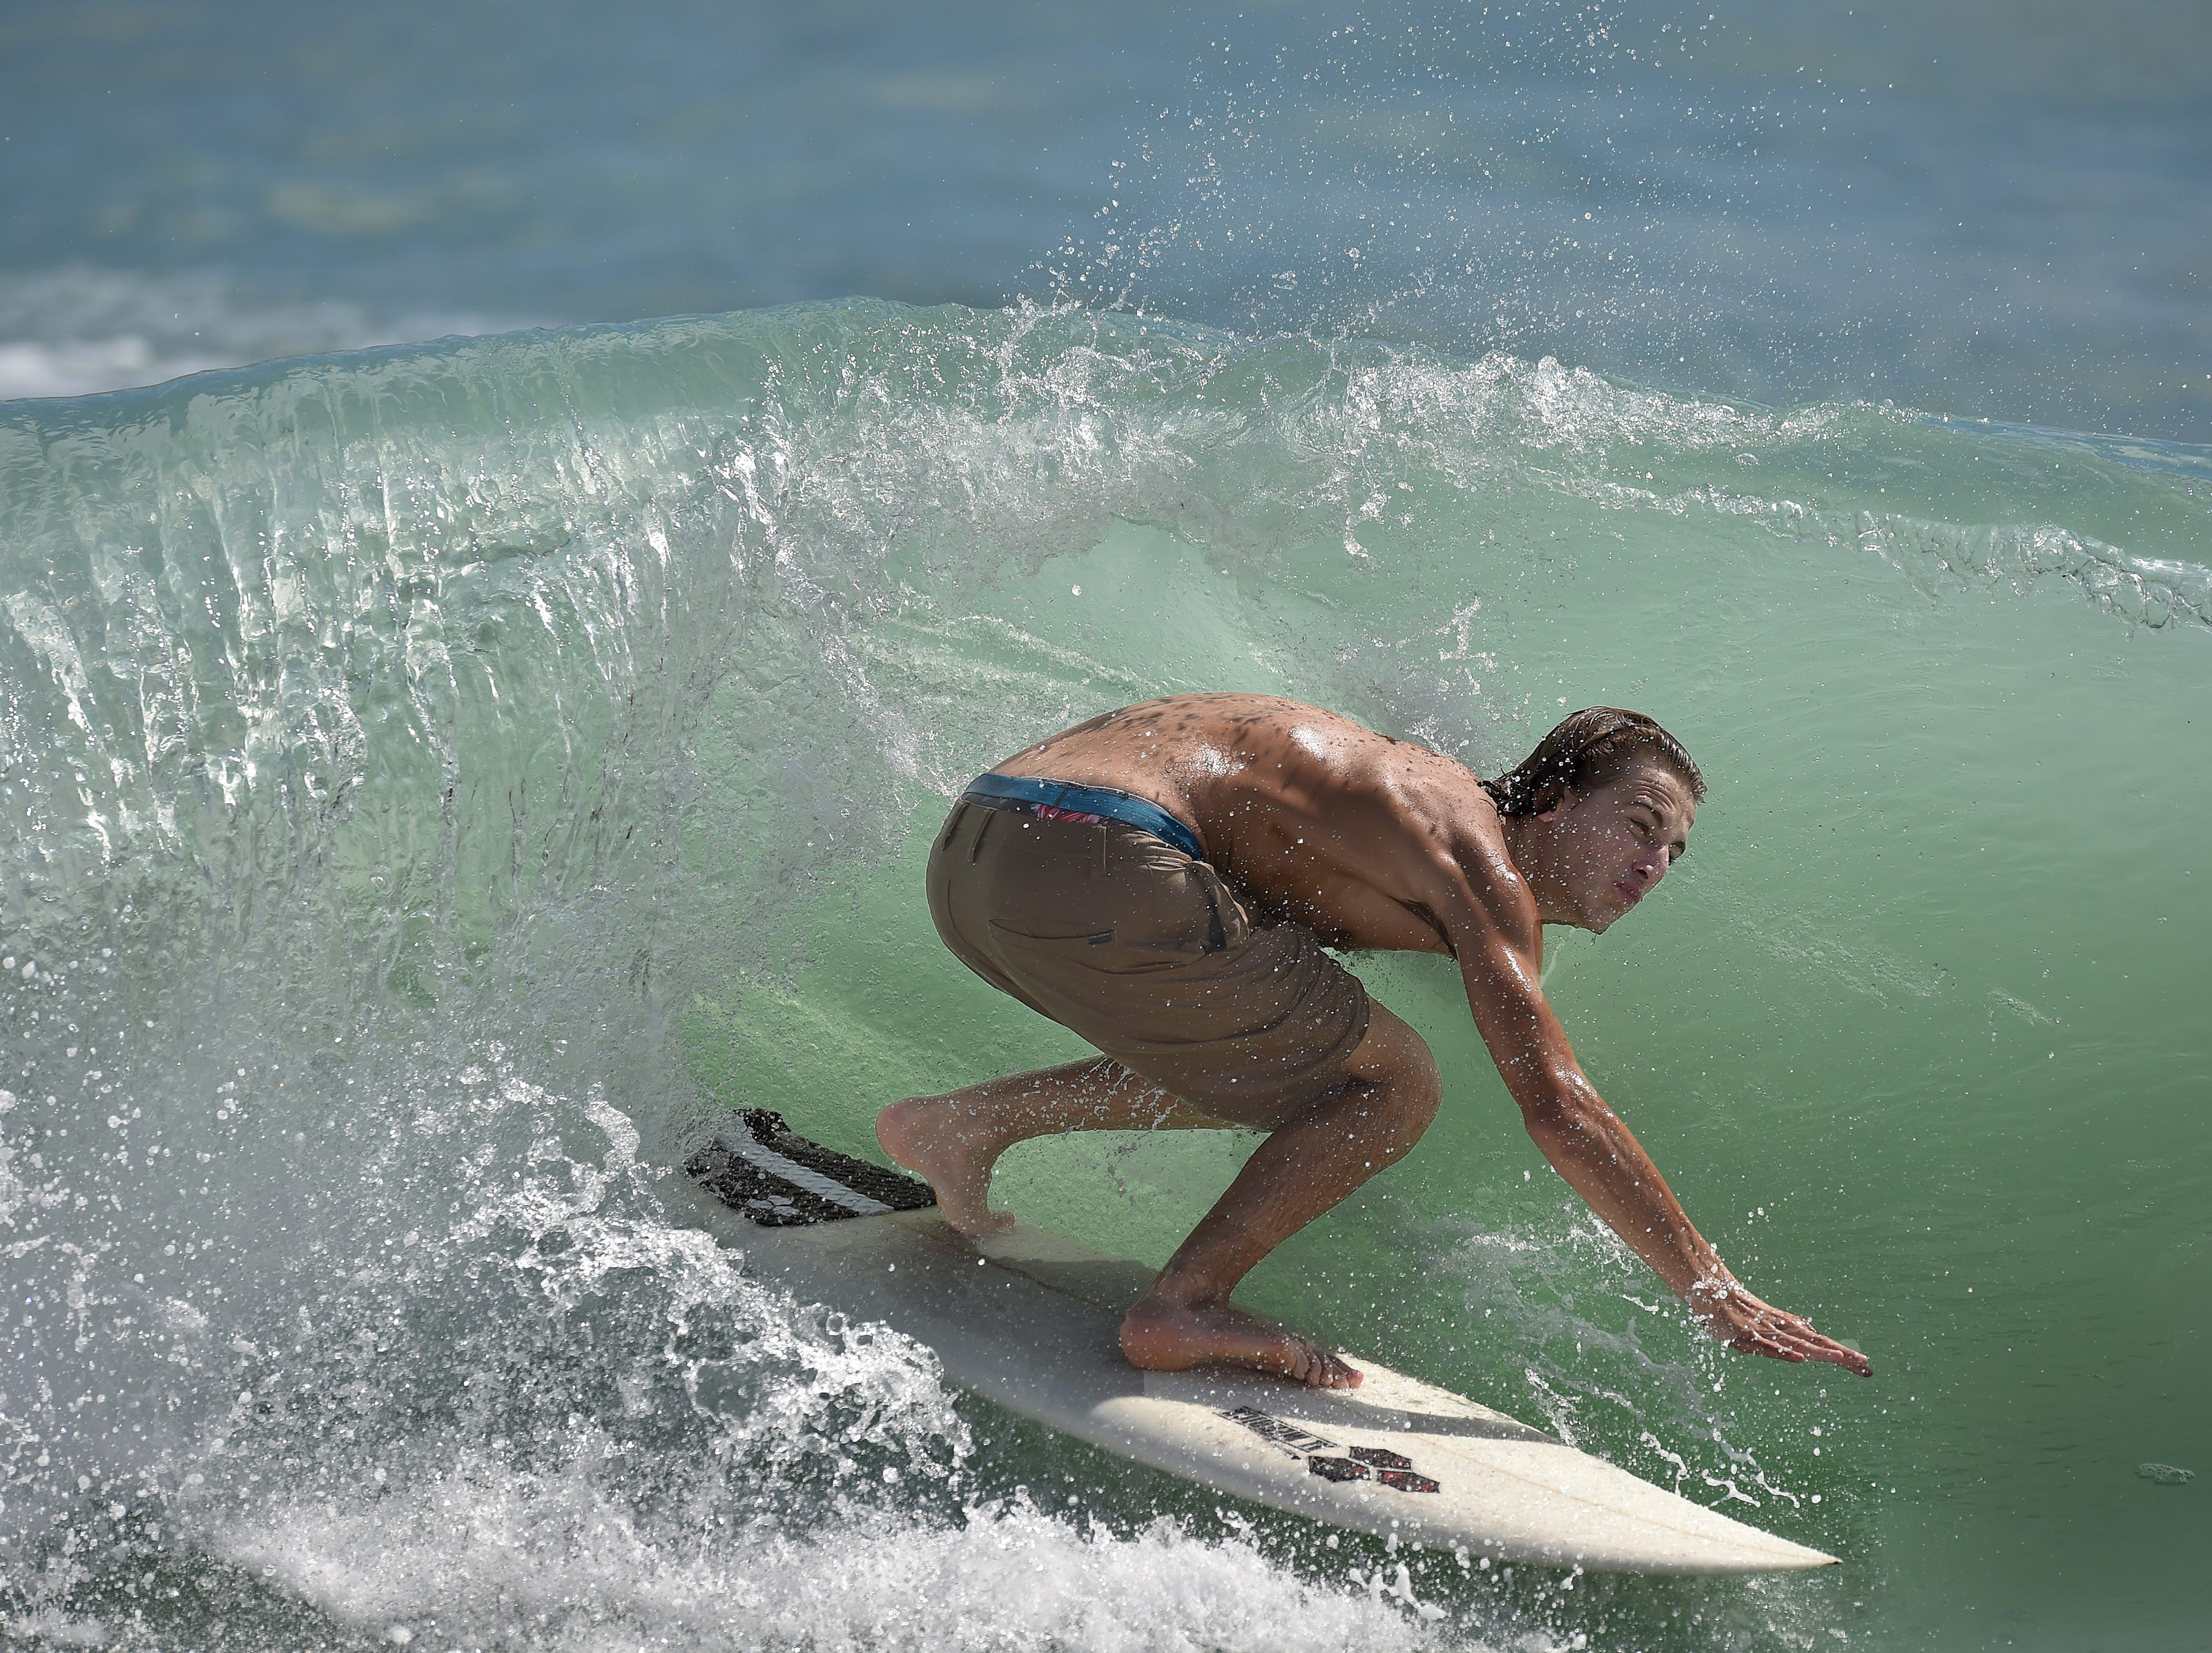 """Noah Aronson, of Miami, catches the inside of a wave surfing on Wednesday, Sept. 12, 2018, at Dollman Park Beachside 9200 South Ocean Drive in Jensen Beach. """"They are fun, they are pretty good,"""" Aronson said about the waves during high tide. Dozens of surfers filled the water including a large group from Miami, riding the  waves from enhanced swells as Hurricane Florence approaches the east coast, aimed at North and South Carolina. Surfers are expecting higher swells creating more powerful waves over the next several days. A high surf advisory has been issued for East Central Florida from 5 p.m. Wednesday until 11 p.m. Thursday, and a high risk for rip currents continues through 8 p.m. Wednesday."""